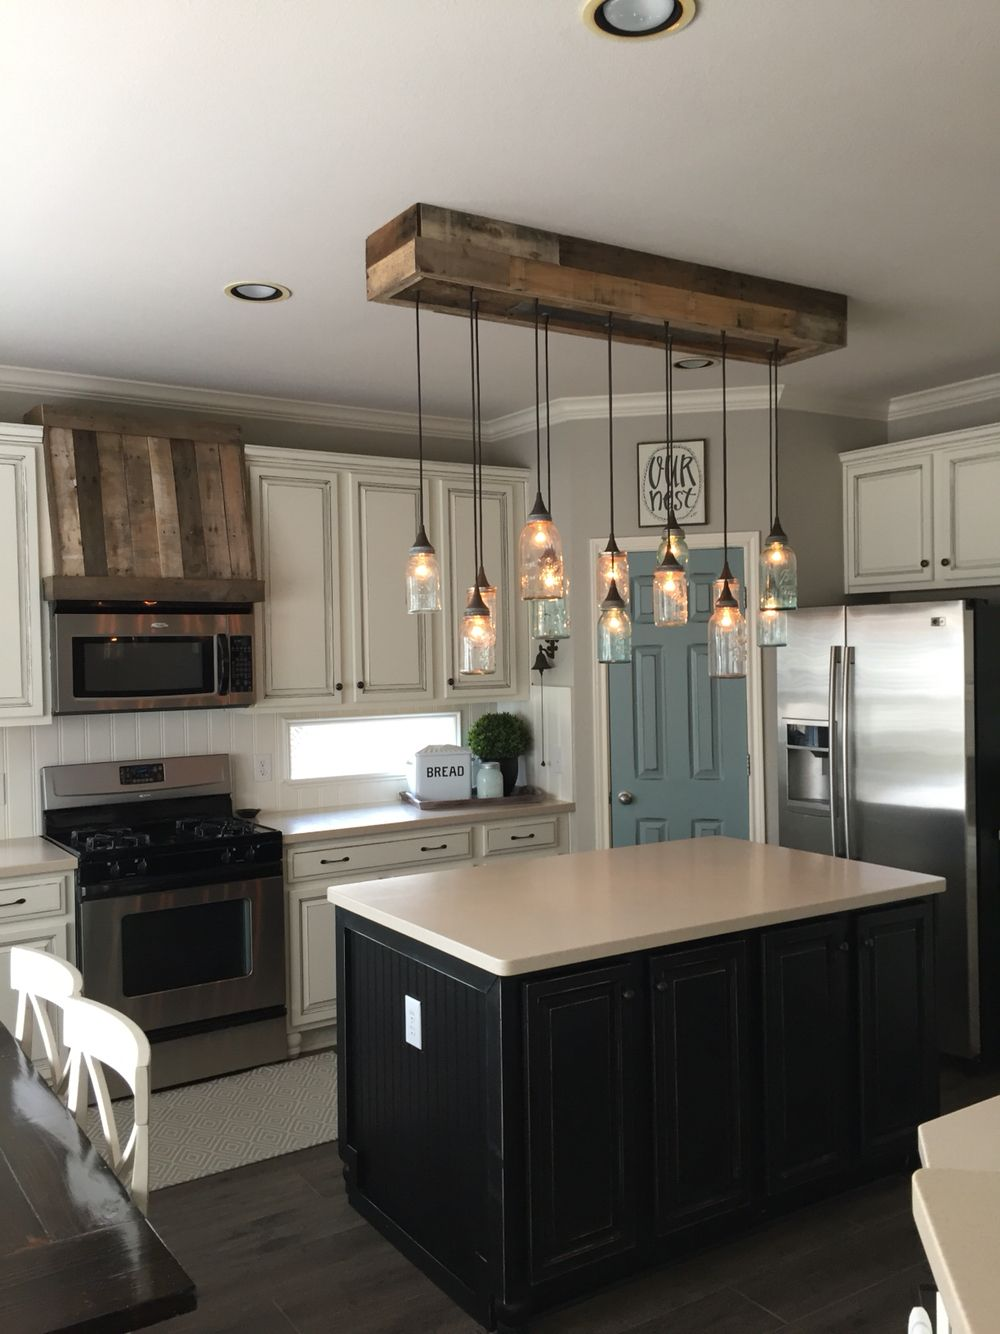 Get the decorative hanging kitchen lights